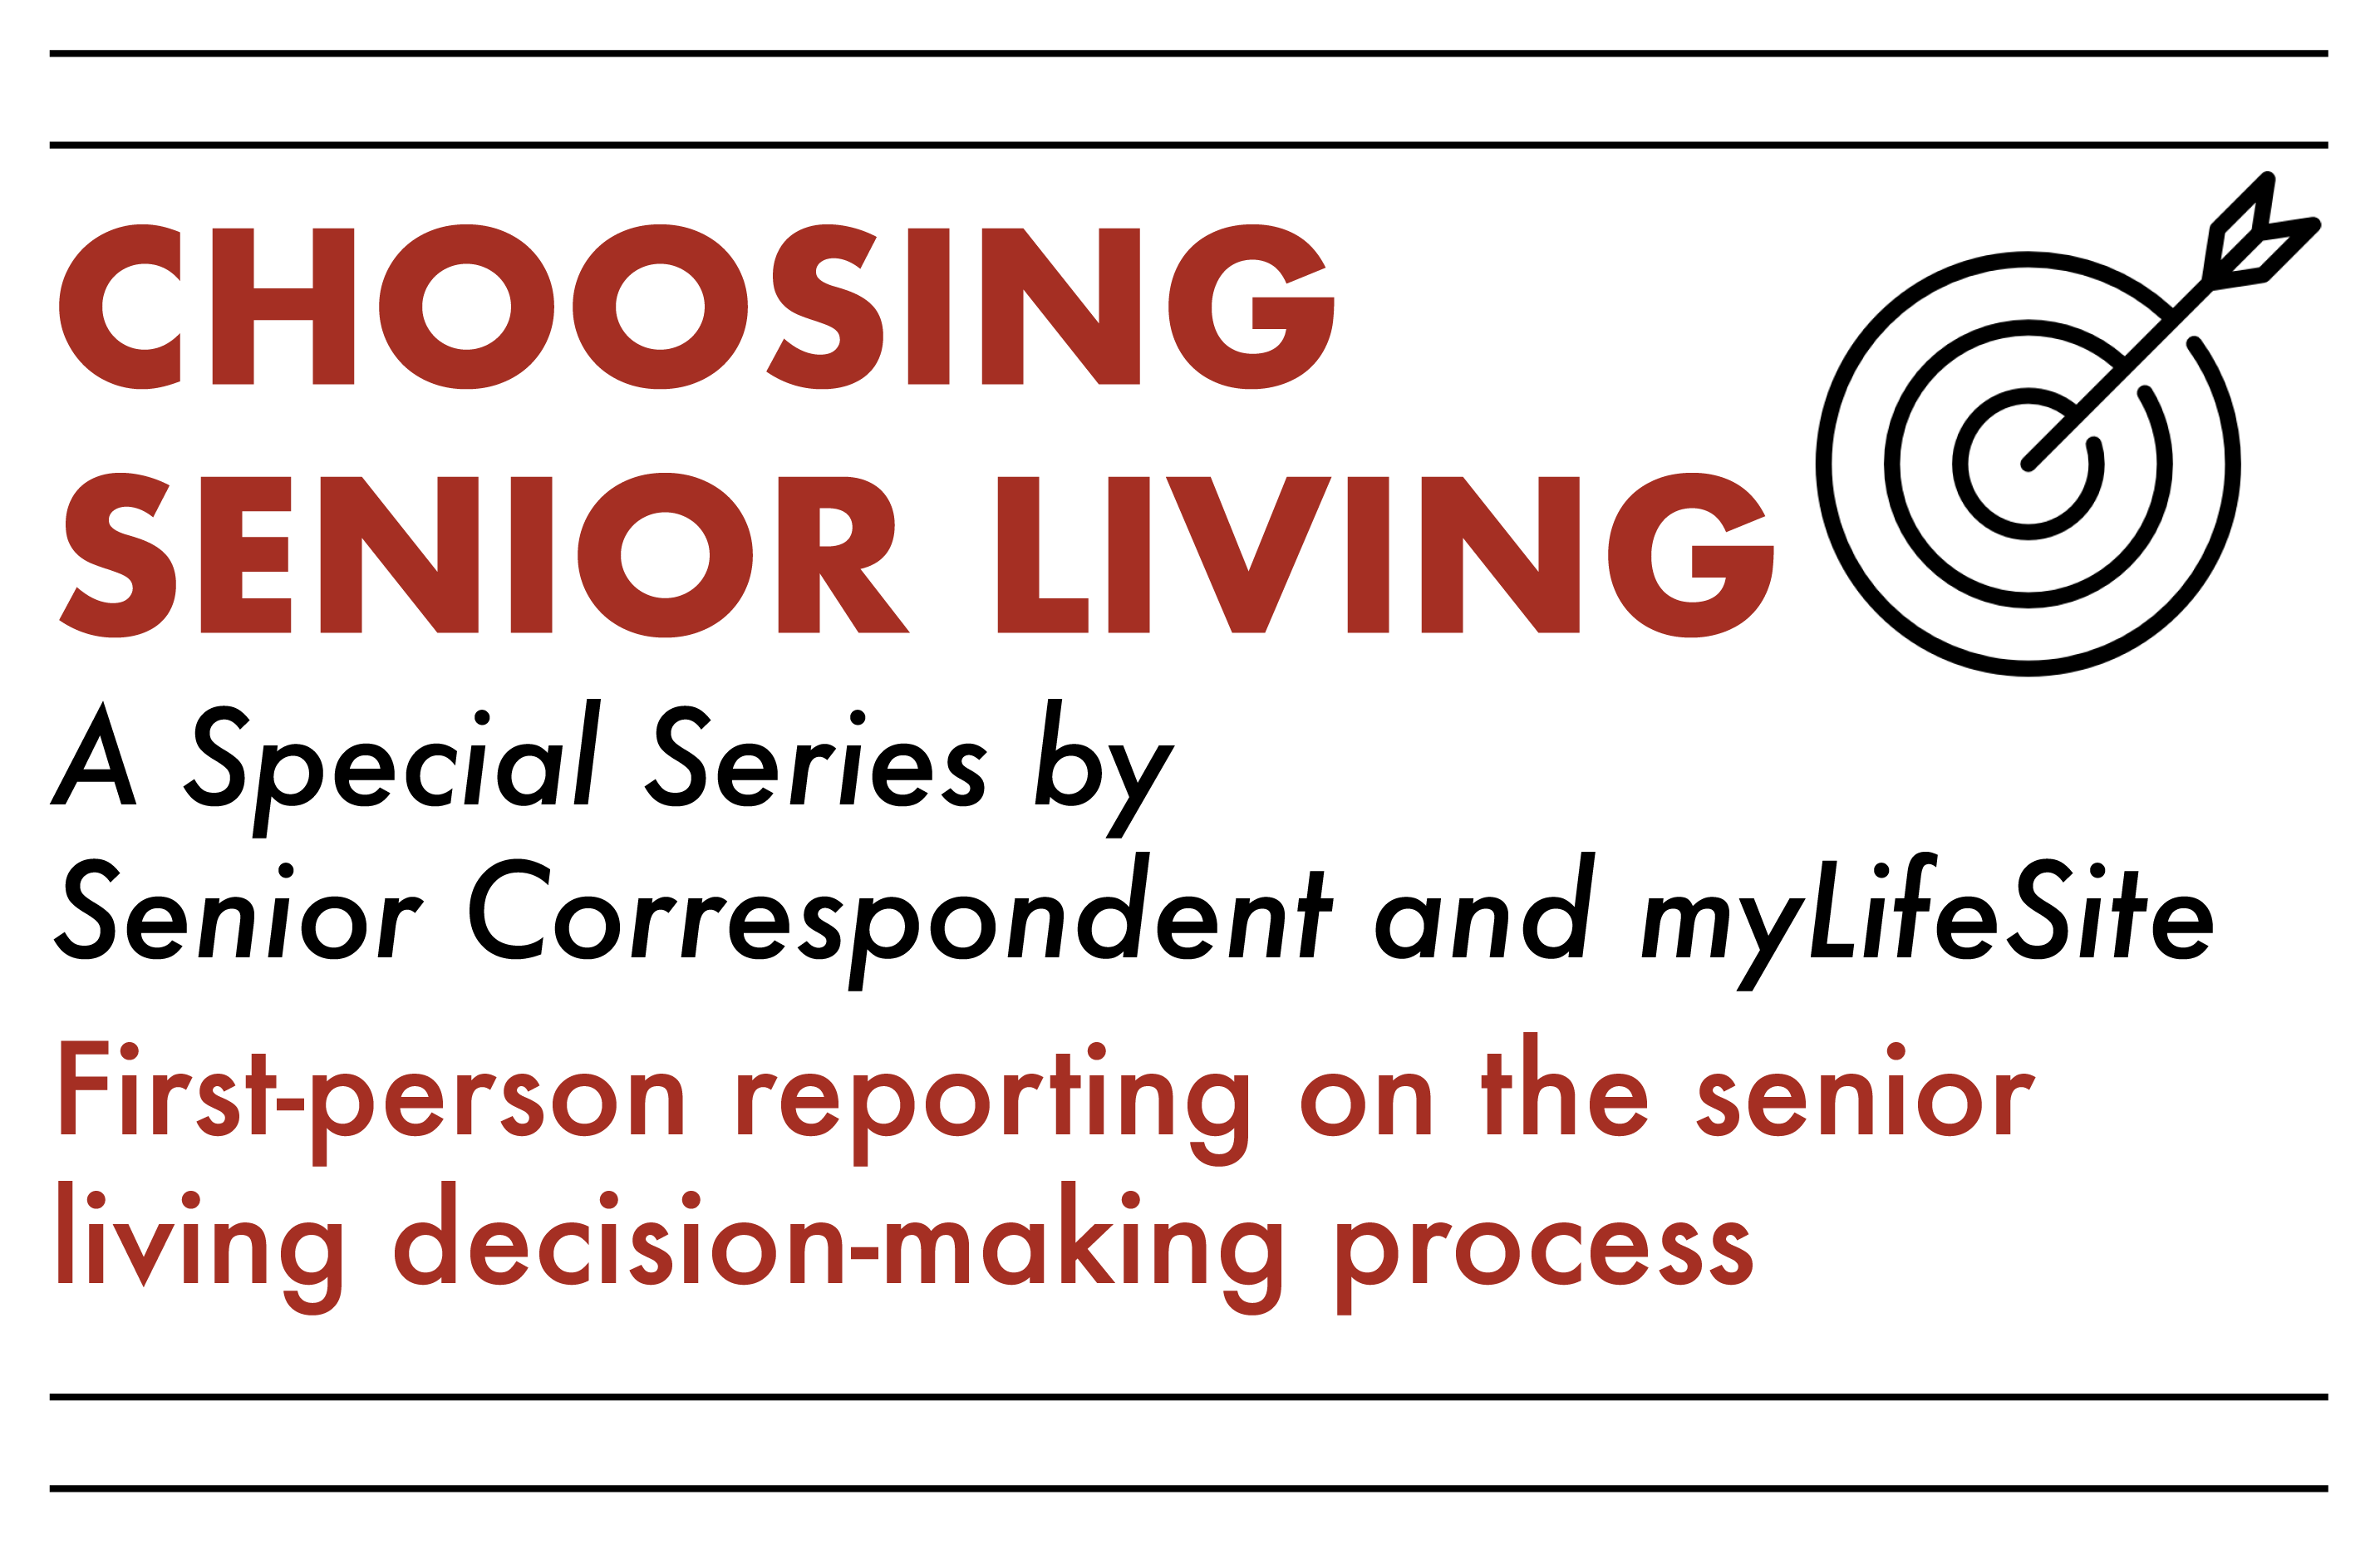 Choosing Senior Living